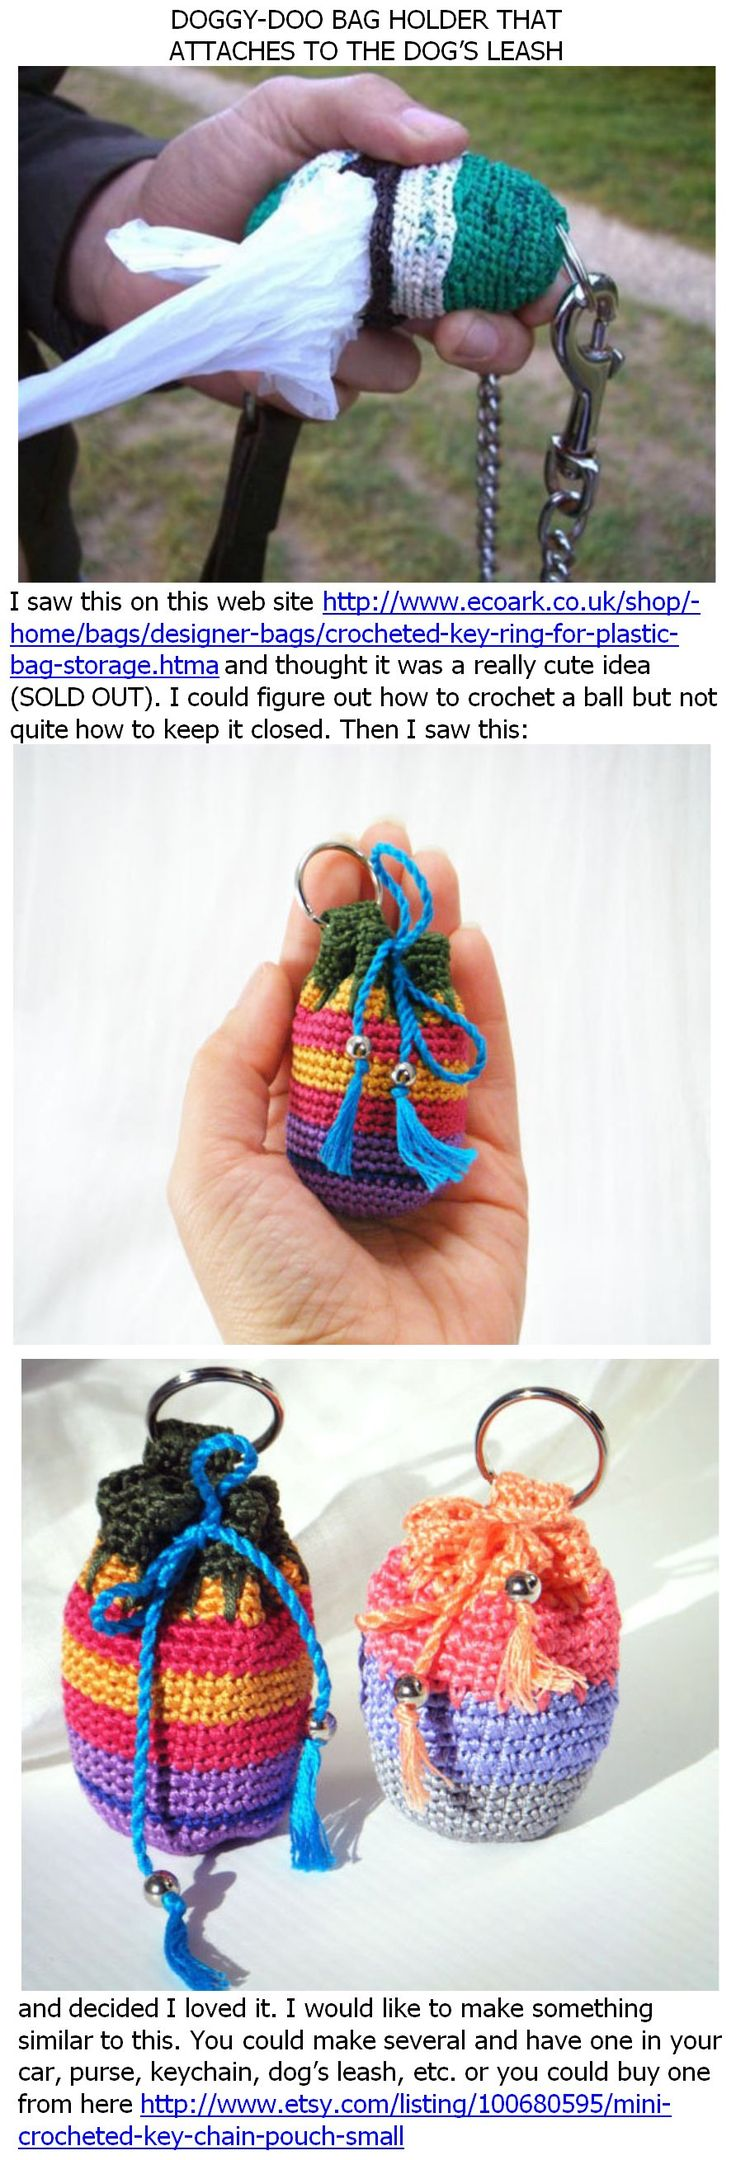 Doggy-doo bag holder to crochet - *Inspiration*